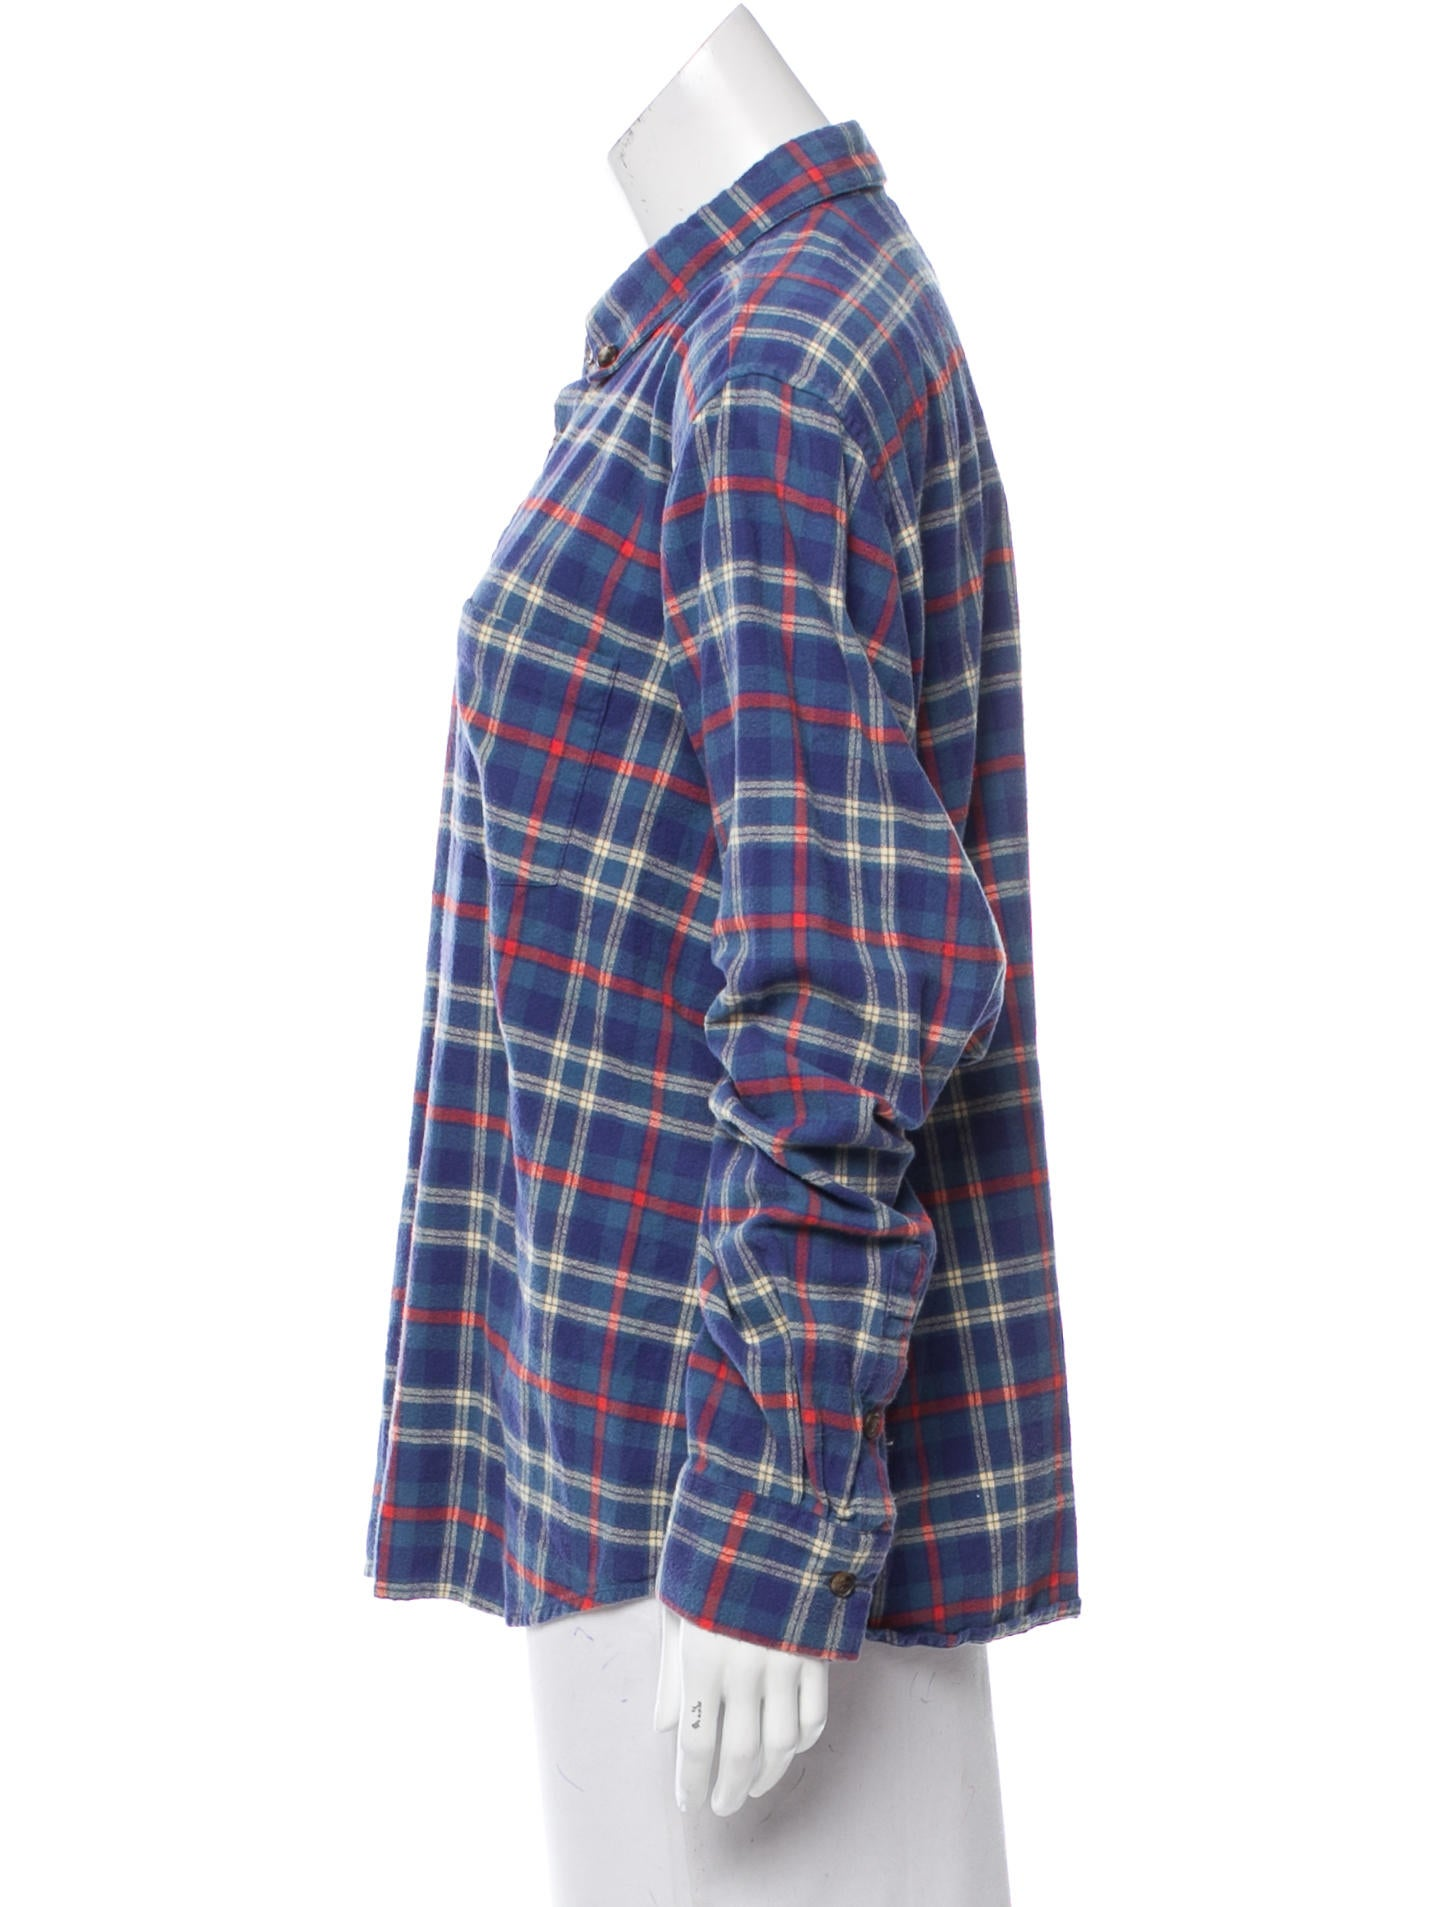 Trademark button up flannel top clothing w2q22046 for Button up flannel shirts